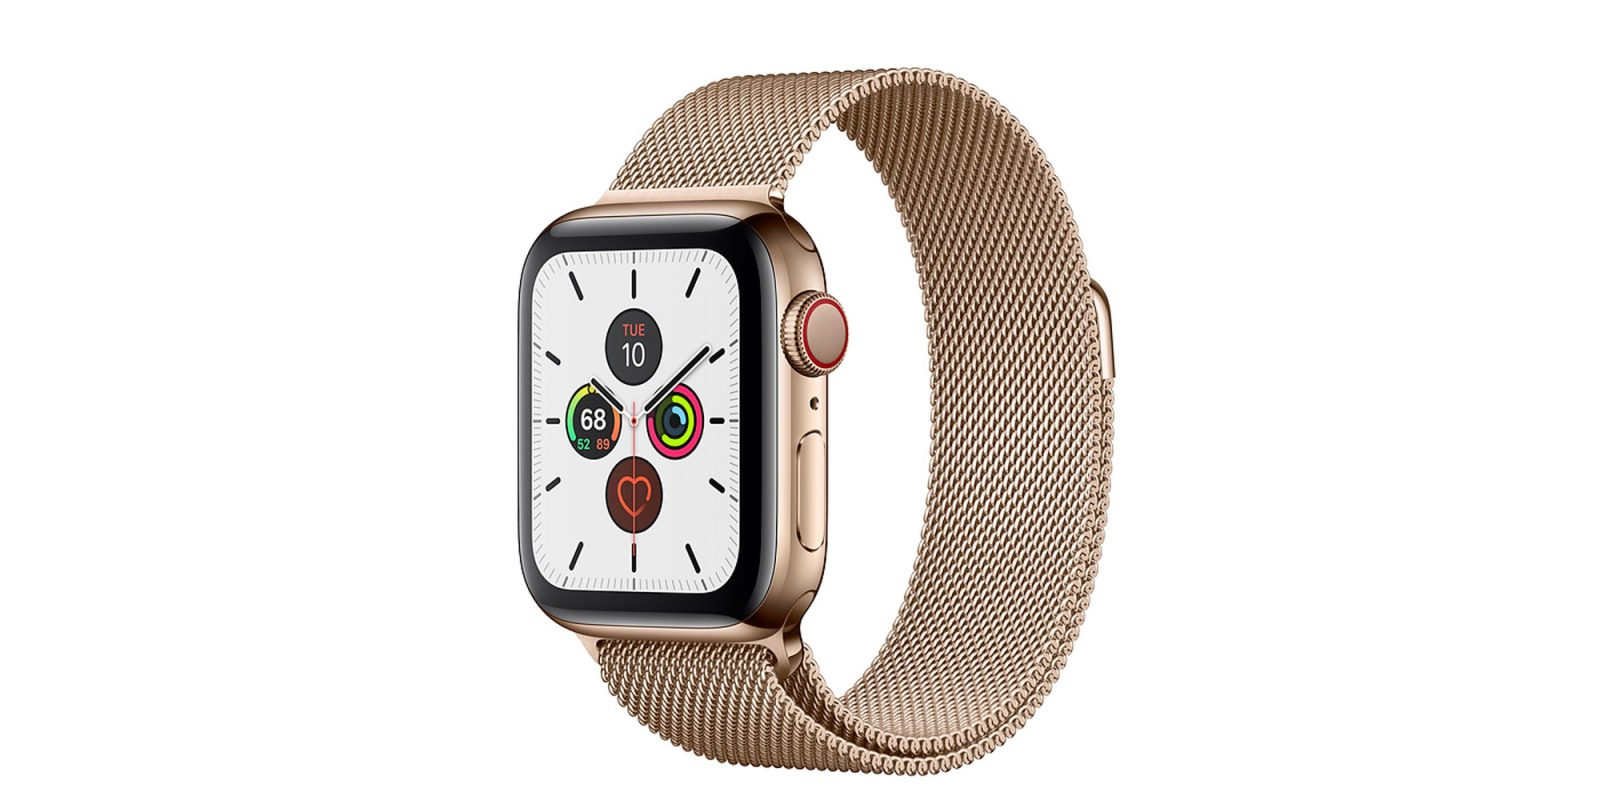 Save nearly $200 on Apple Watch Series 5 Stainless Steel at Walmart, now $599